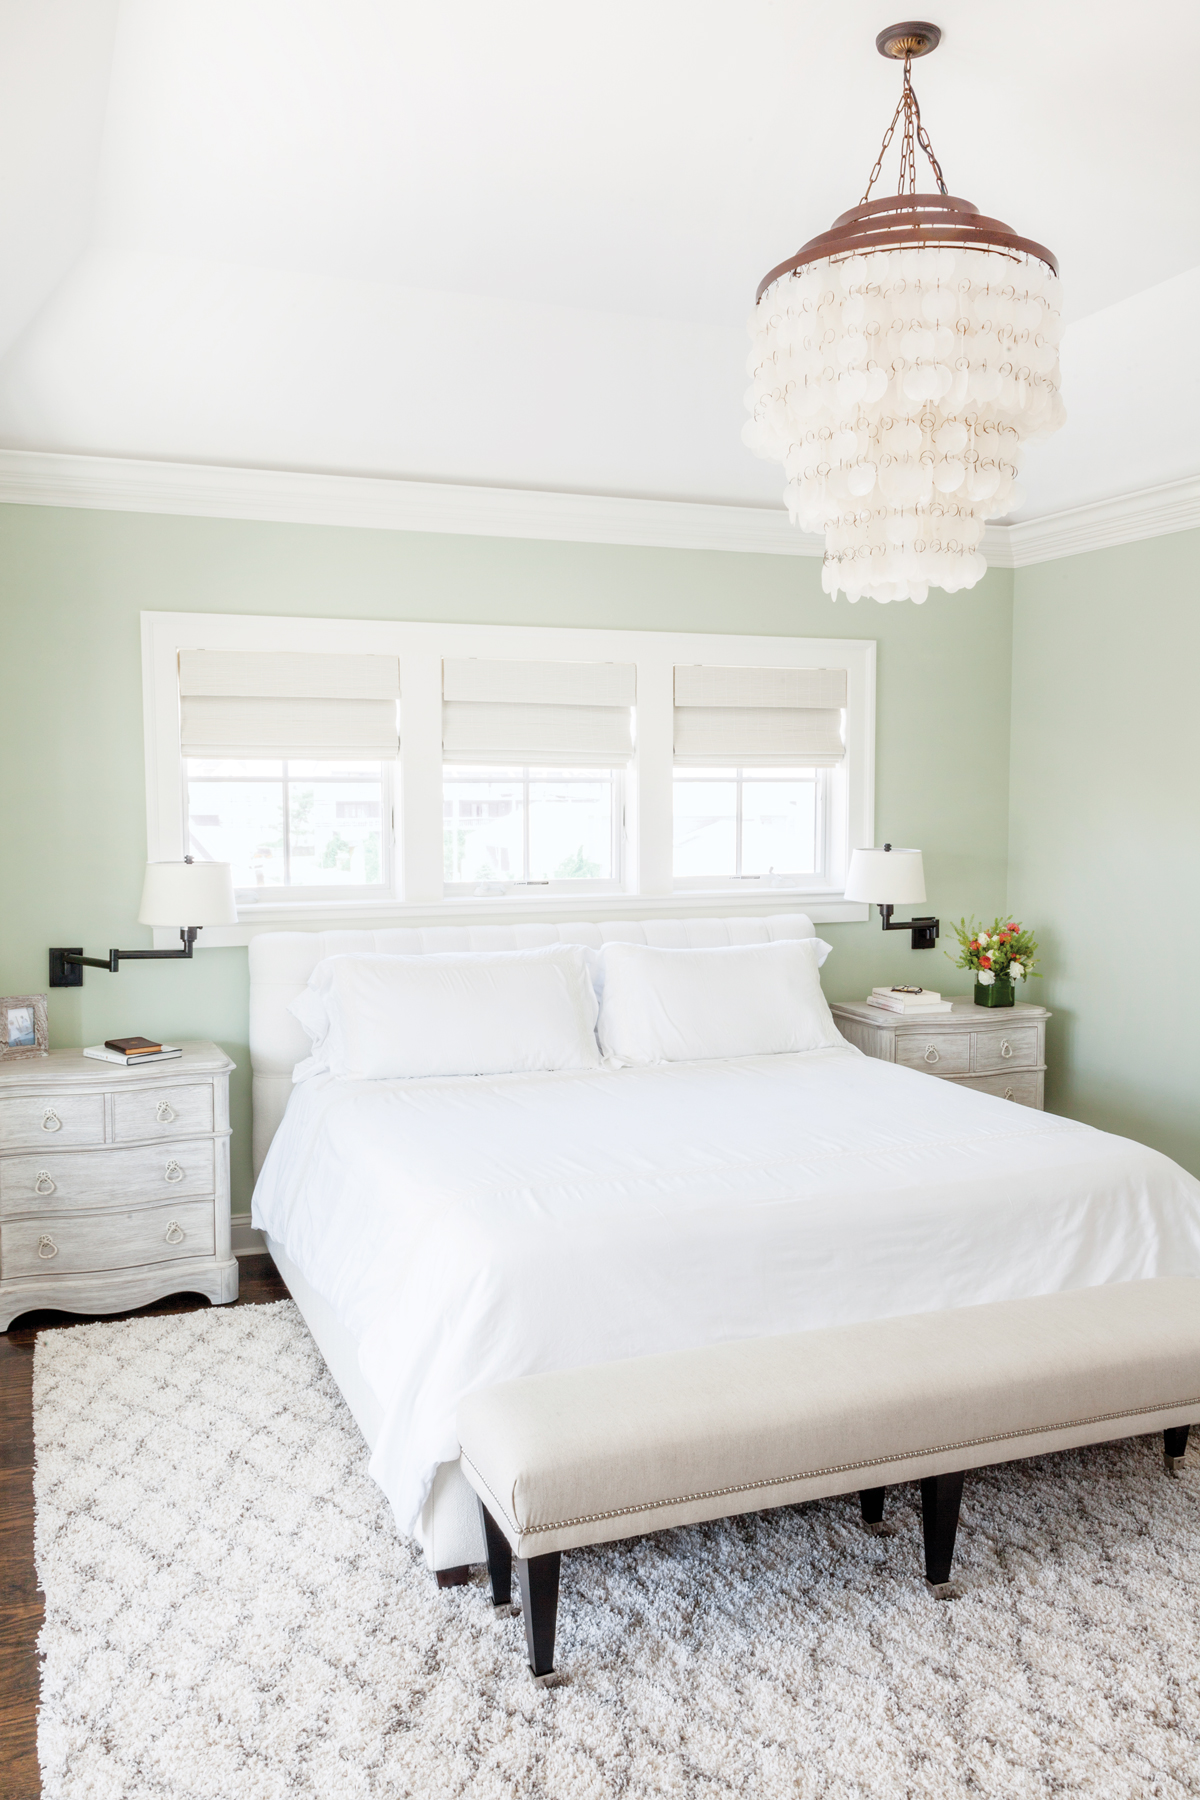 The Bedroom, Painted In A Pale Watery Hue, Features A Capiz Style  Chandelier, One Of Homeowner Cassandra Vinceu0027s ...